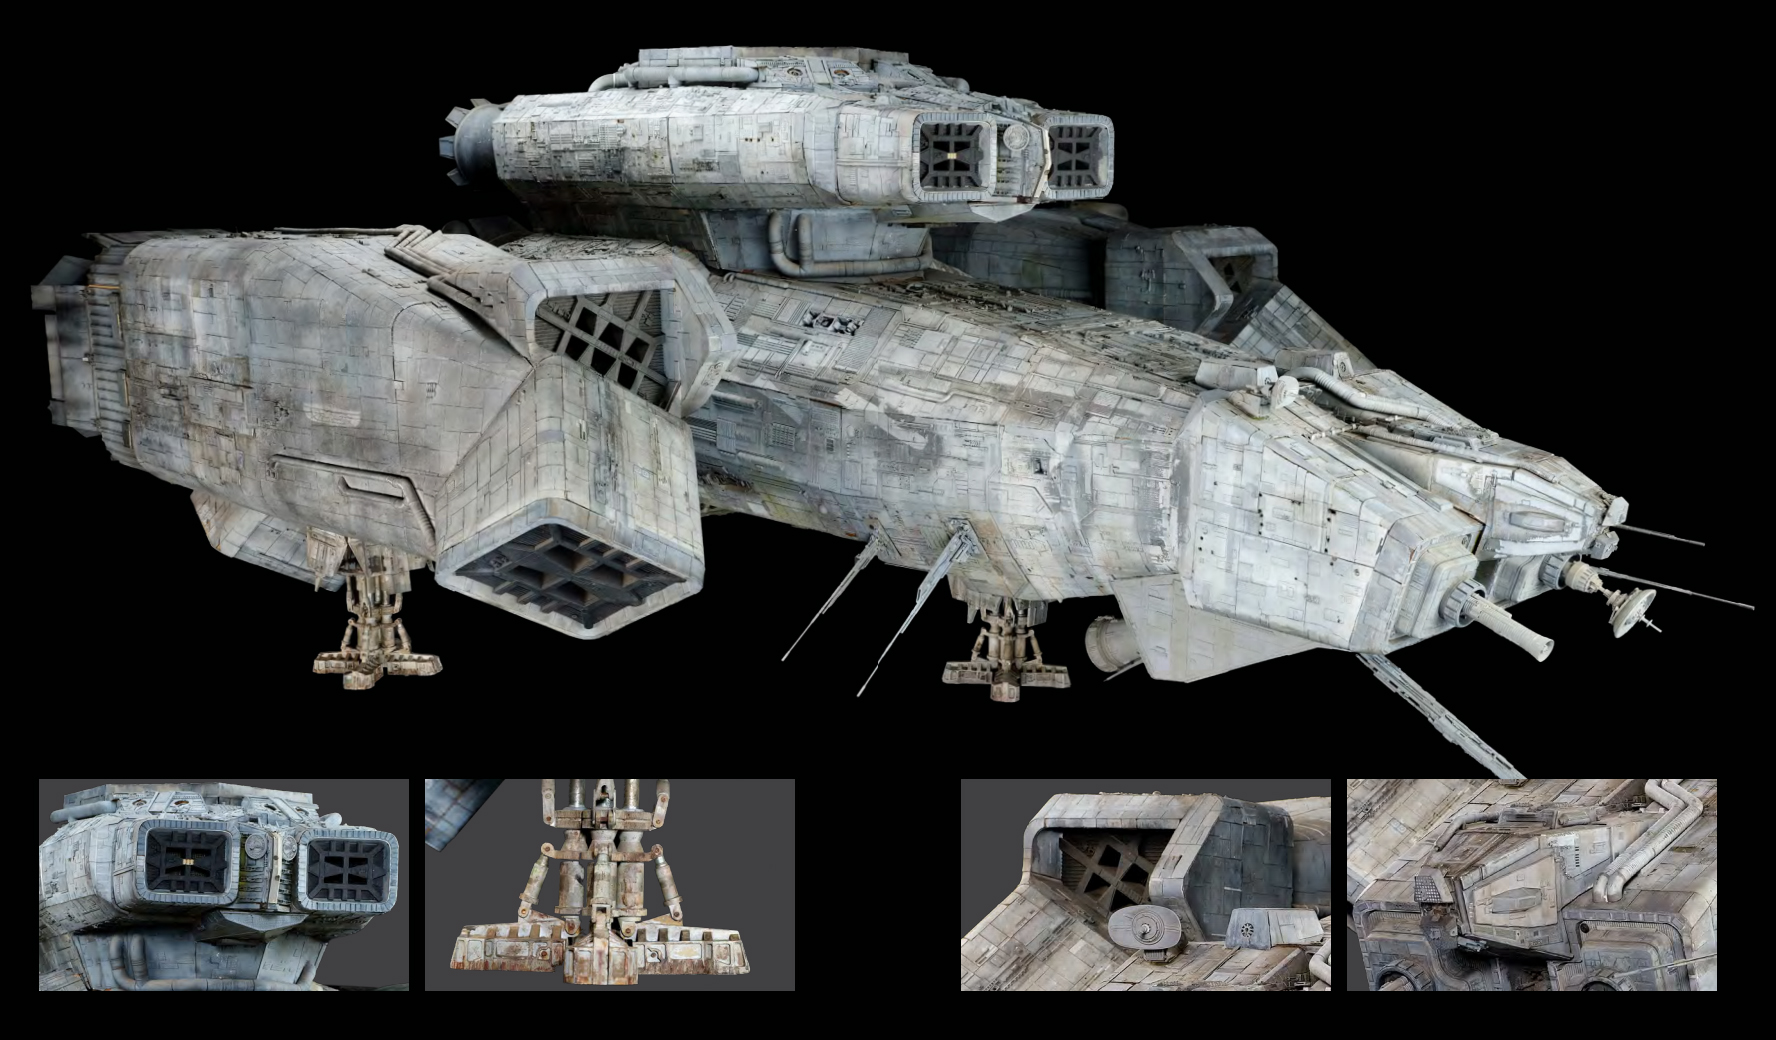 The original Nostromo model from Alien looks great and could be yours for a mere $300K